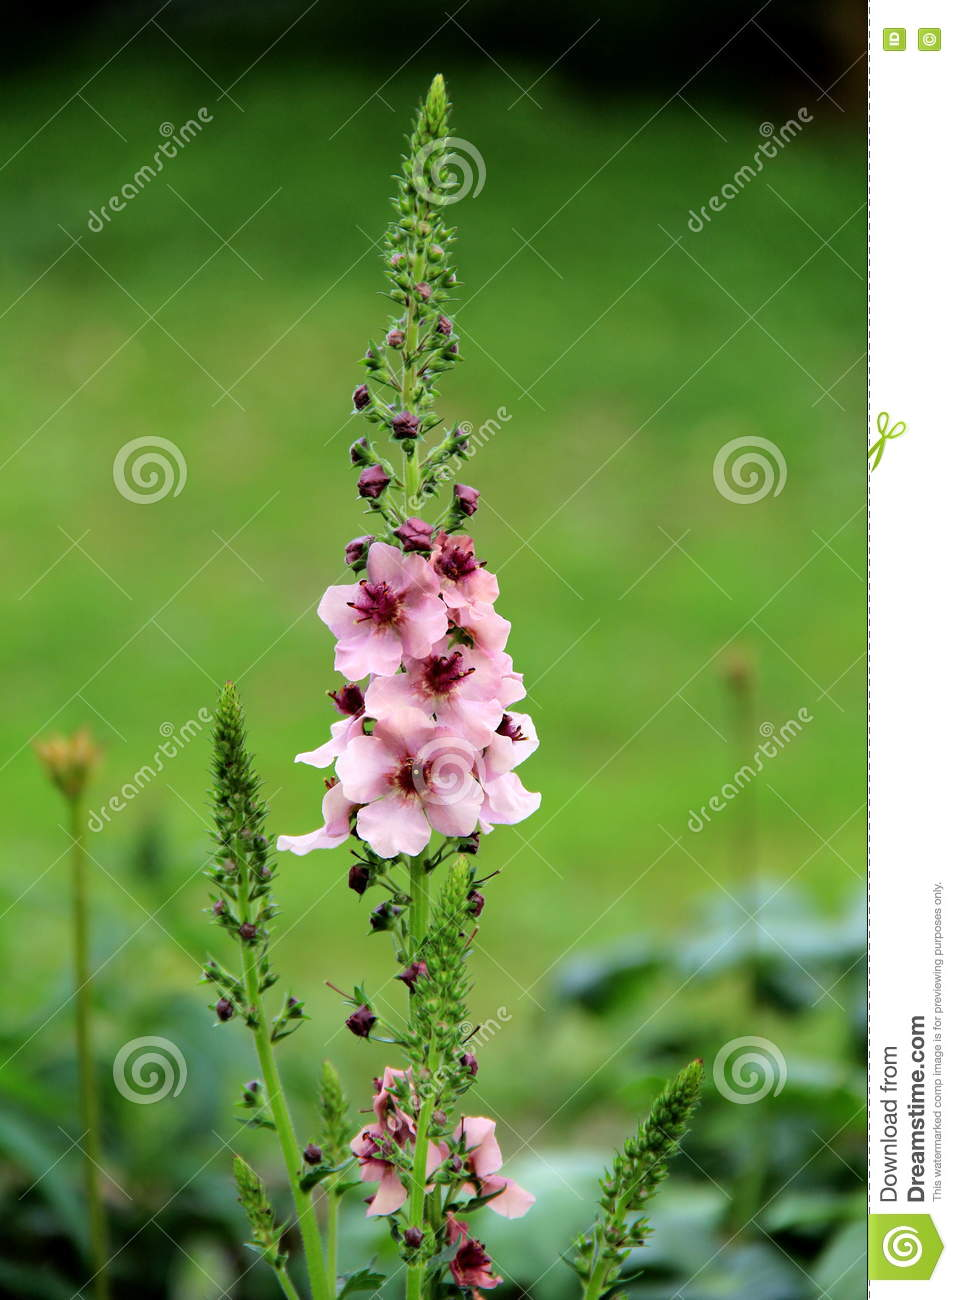 Pretty Pink Flowers On Tall Green Stalk In Meadow Stock Photo